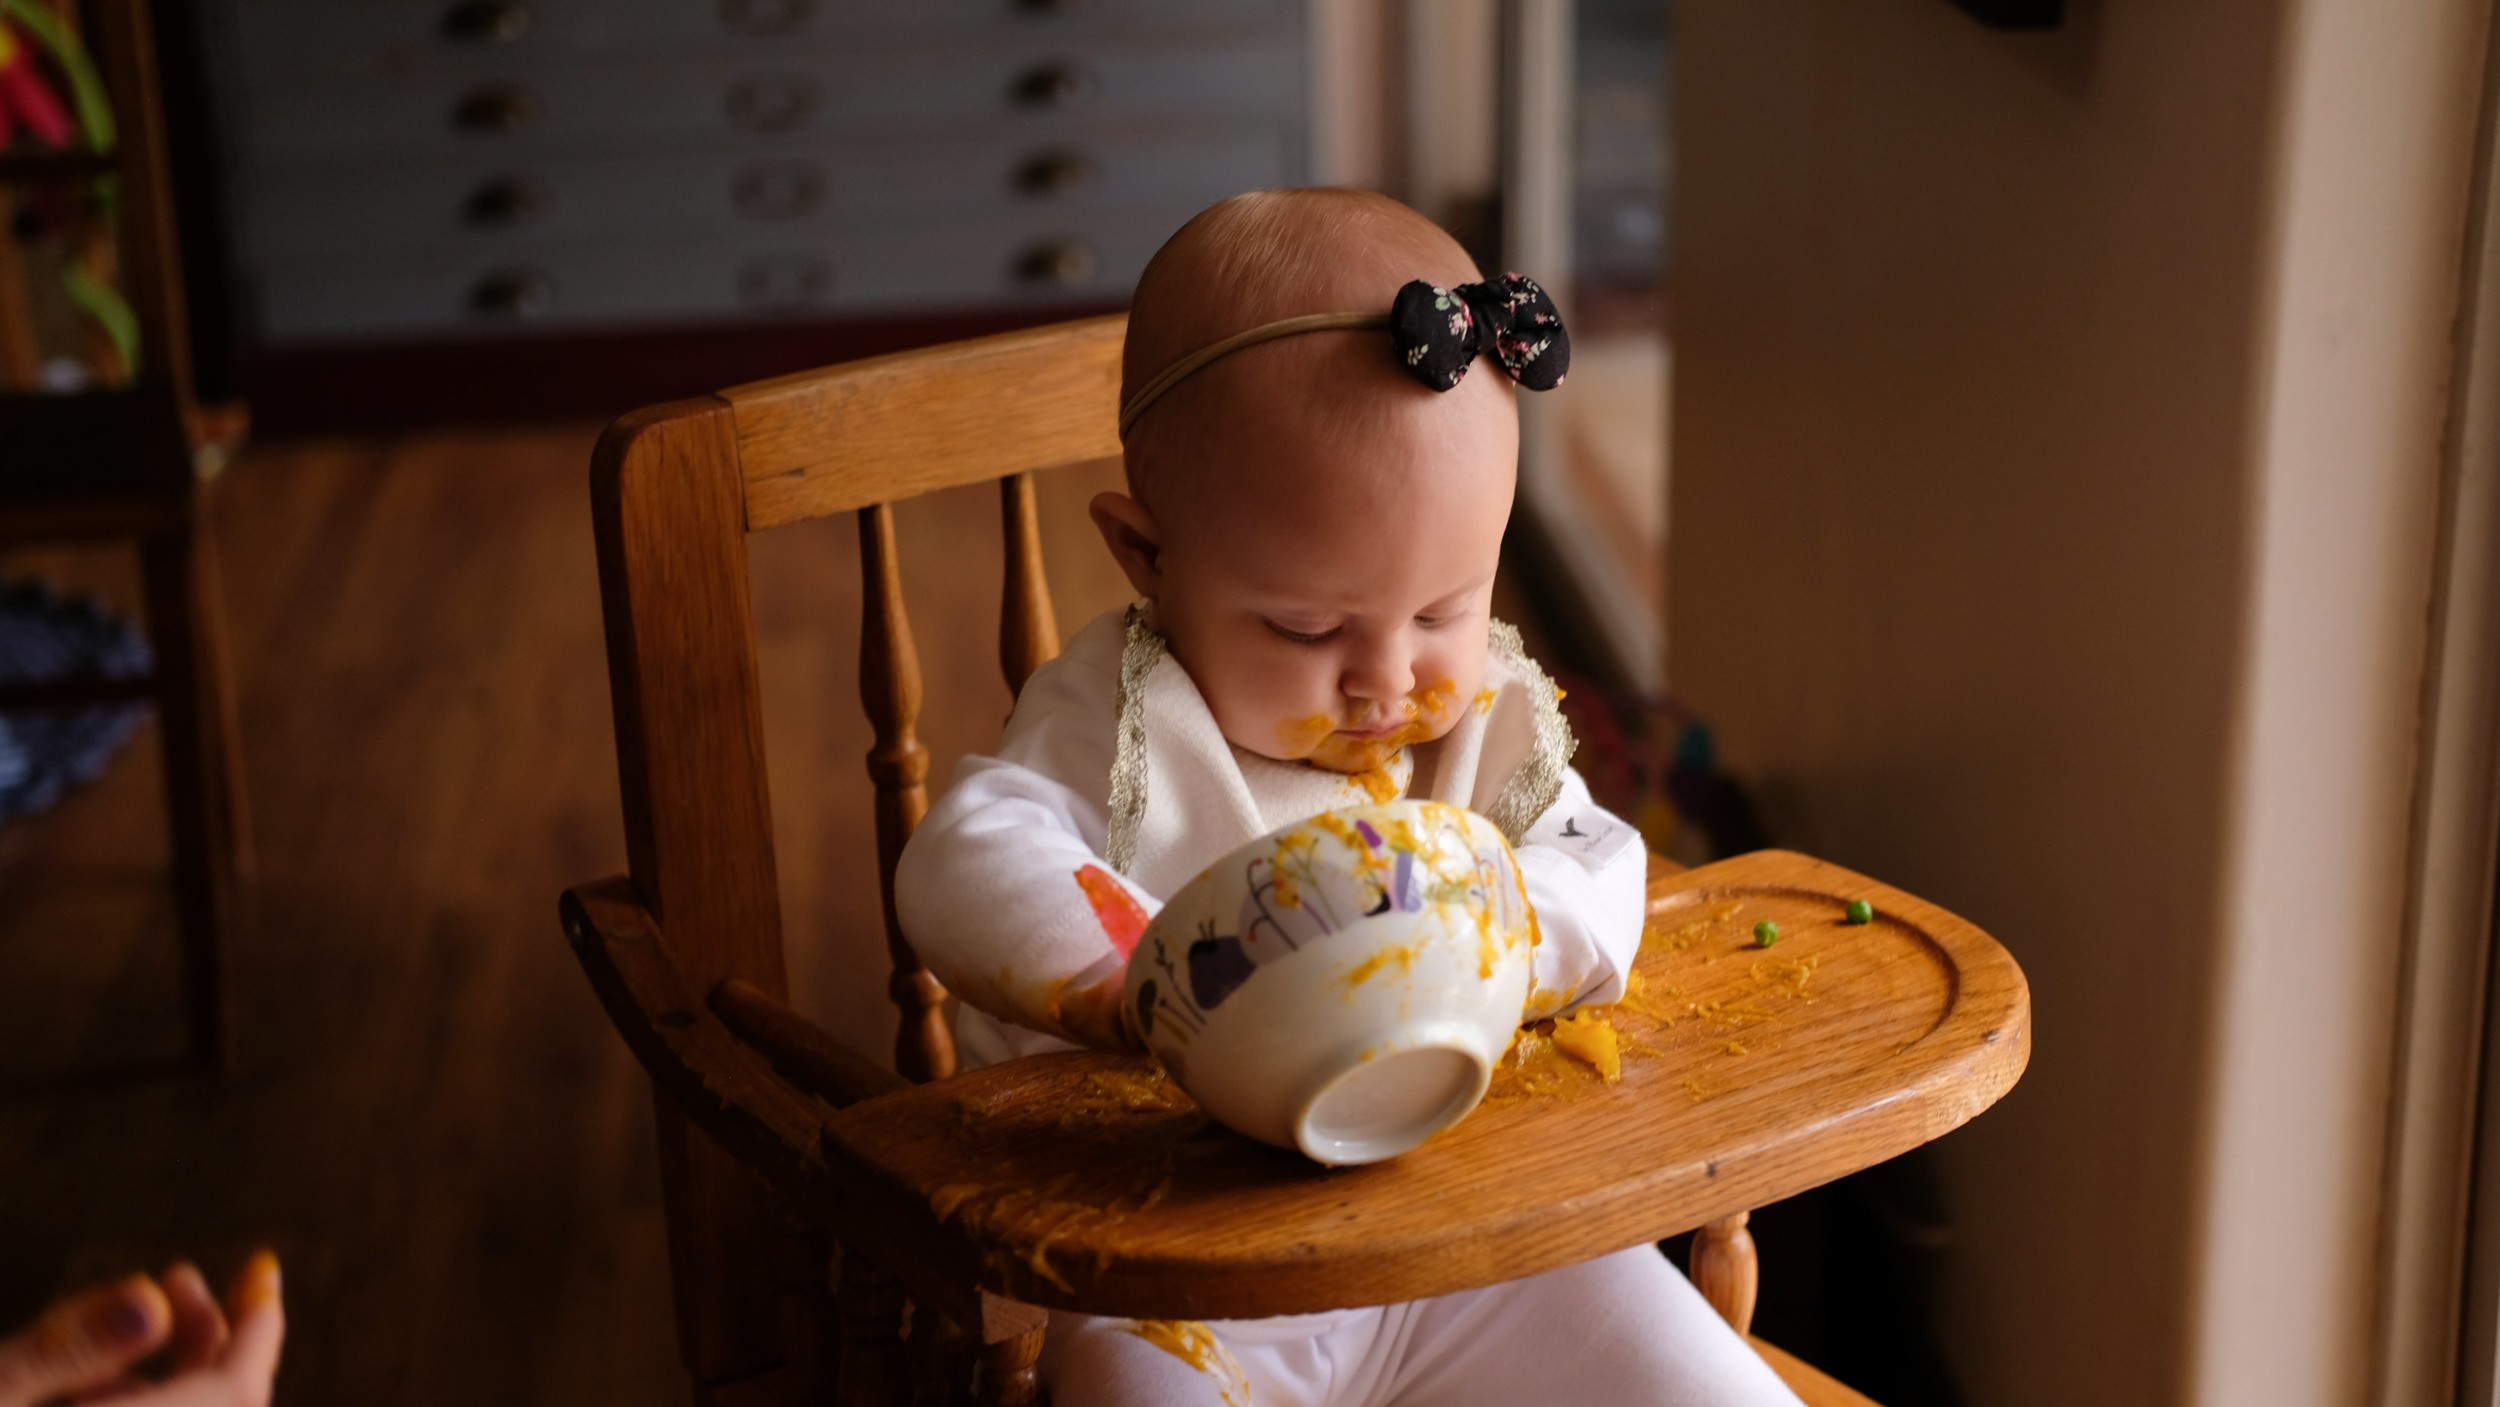 #momming101: Introducing solids. Everything about baby's 1st year!